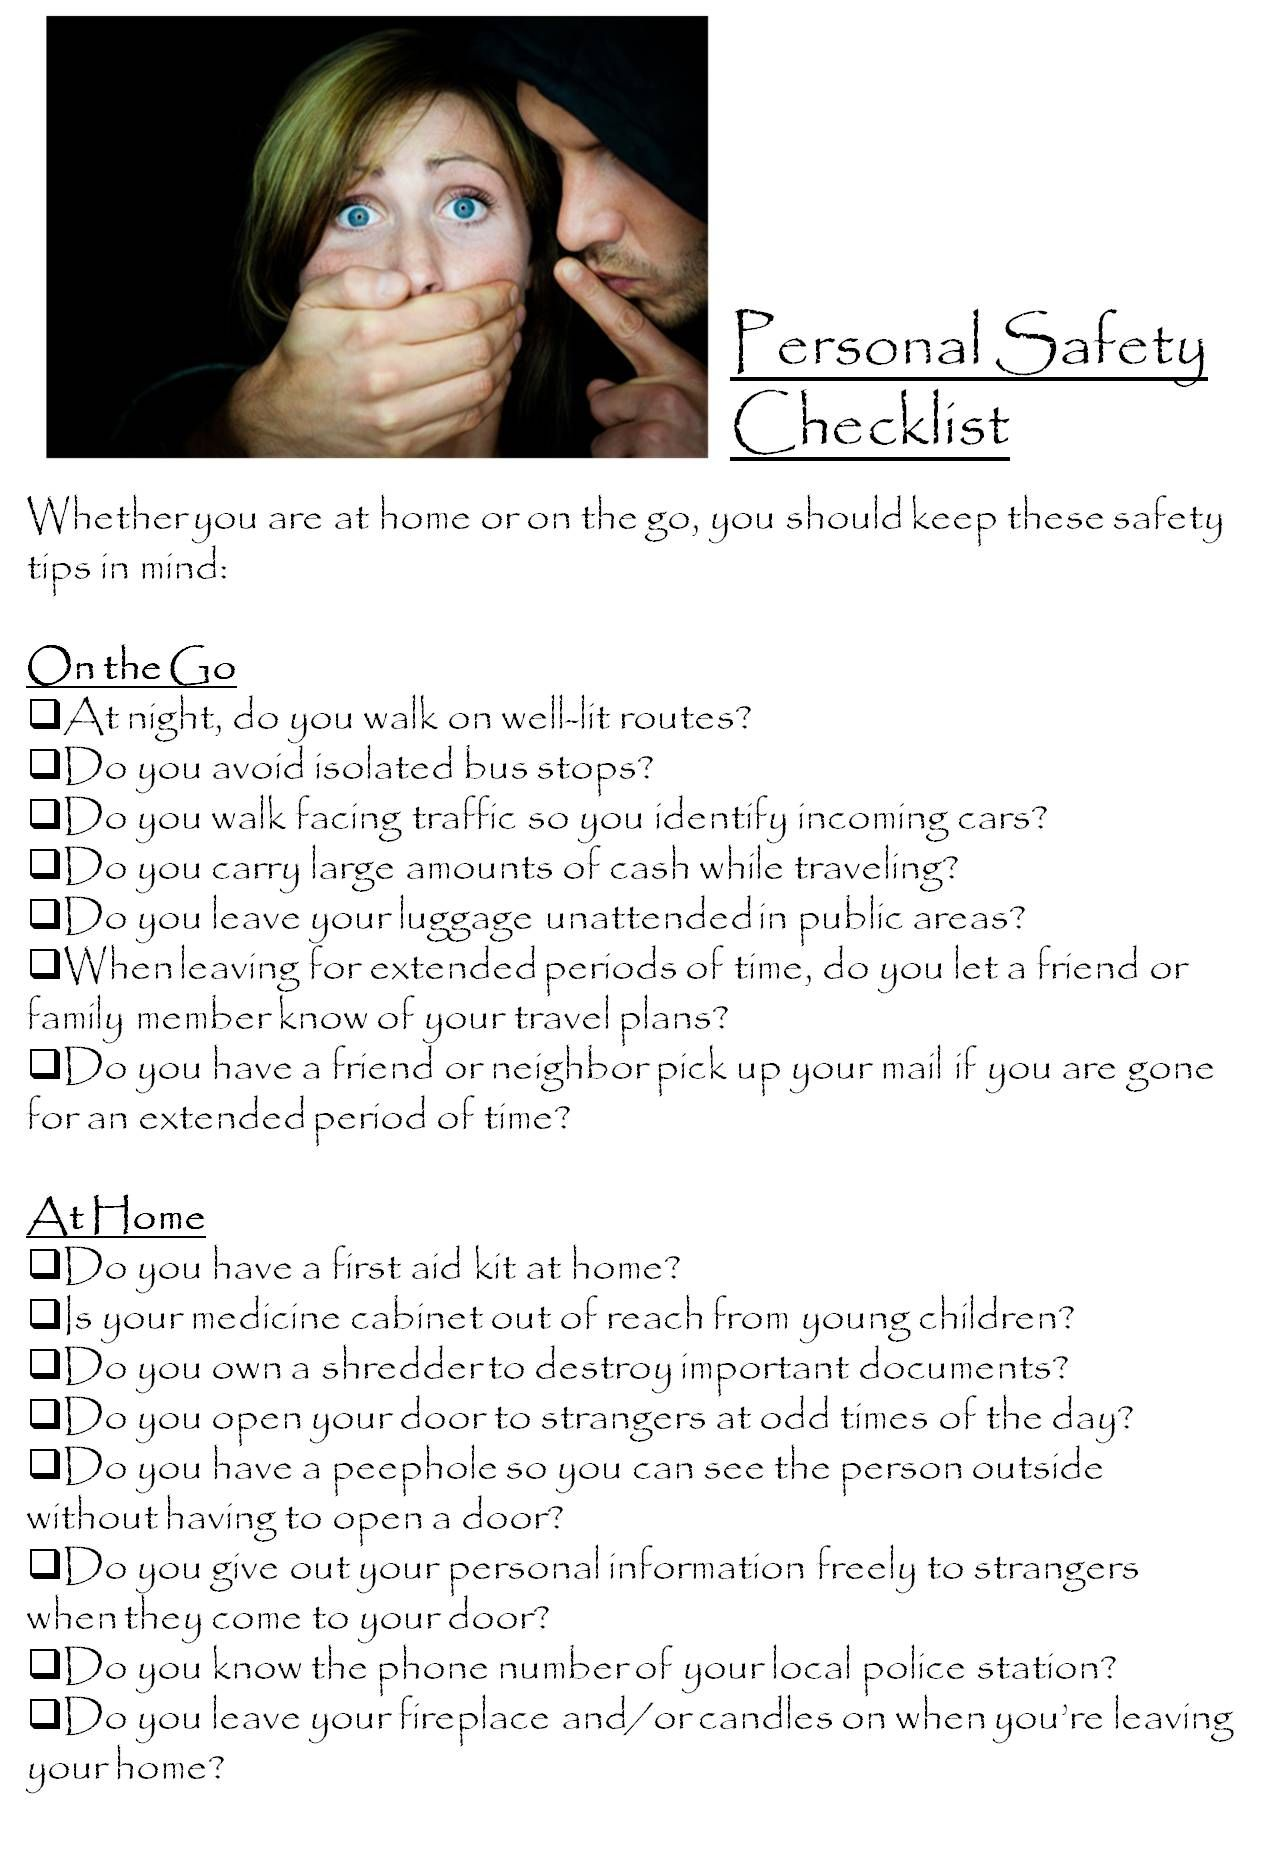 Personal Safety Checklist Personal safety, Safety